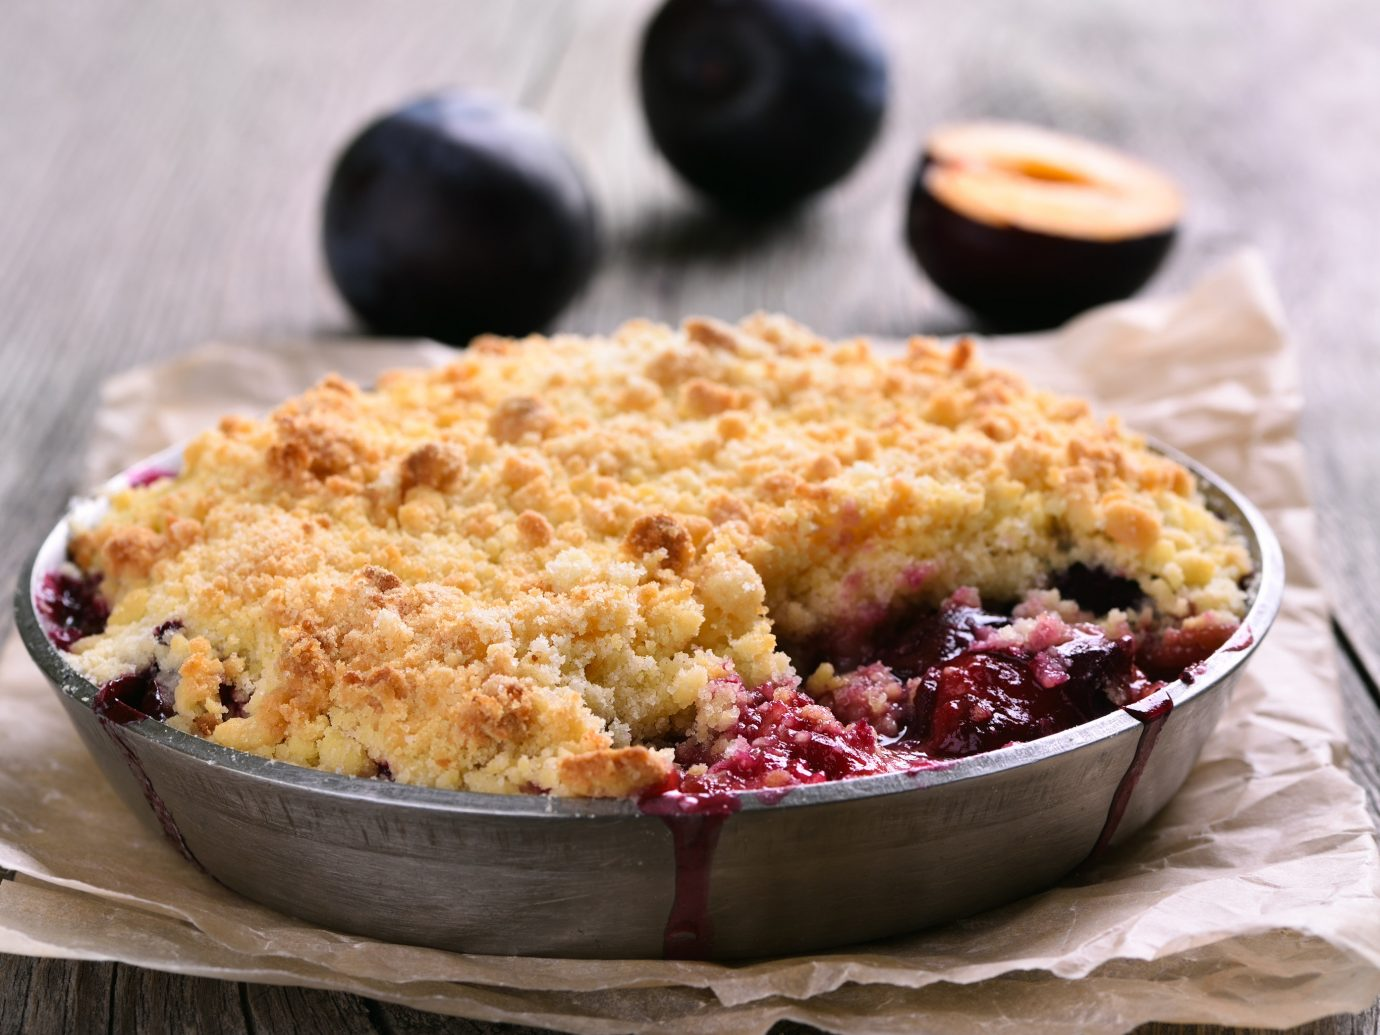 Trip Ideas food table dish berry plate indoor produce plant fruit dessert crumble land plant baked goods breakfast cranberry cherry pie flowering plant meal blueberry